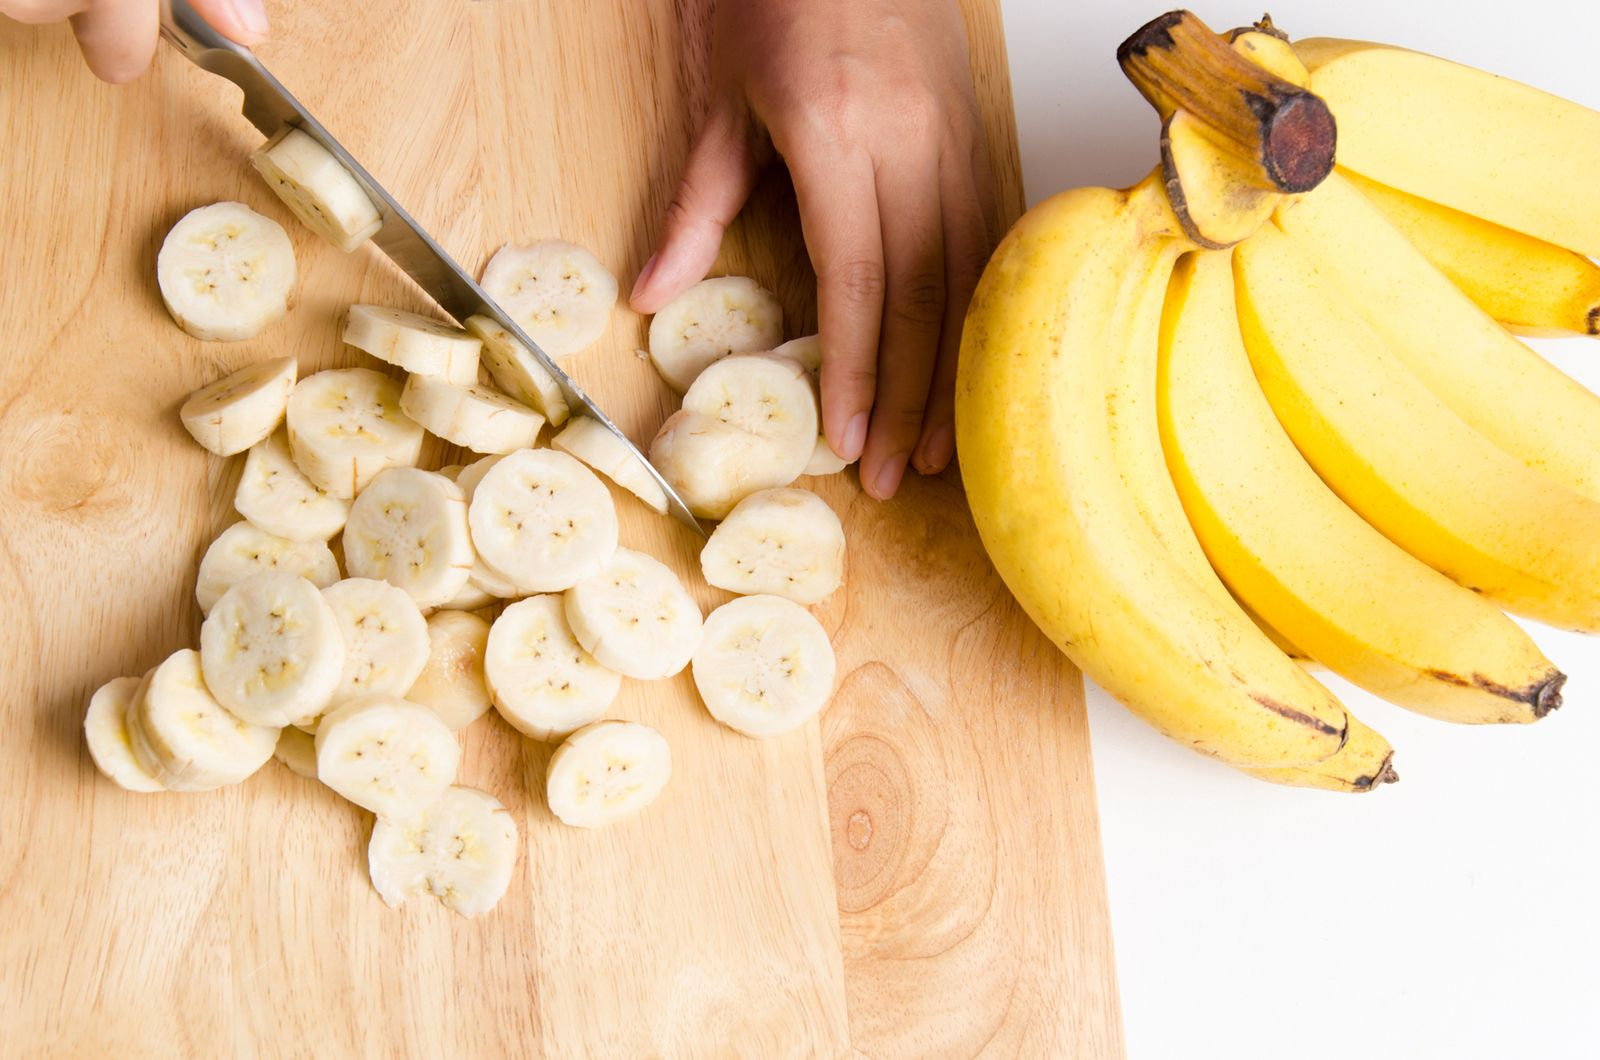 The 10 best fruits for athletes